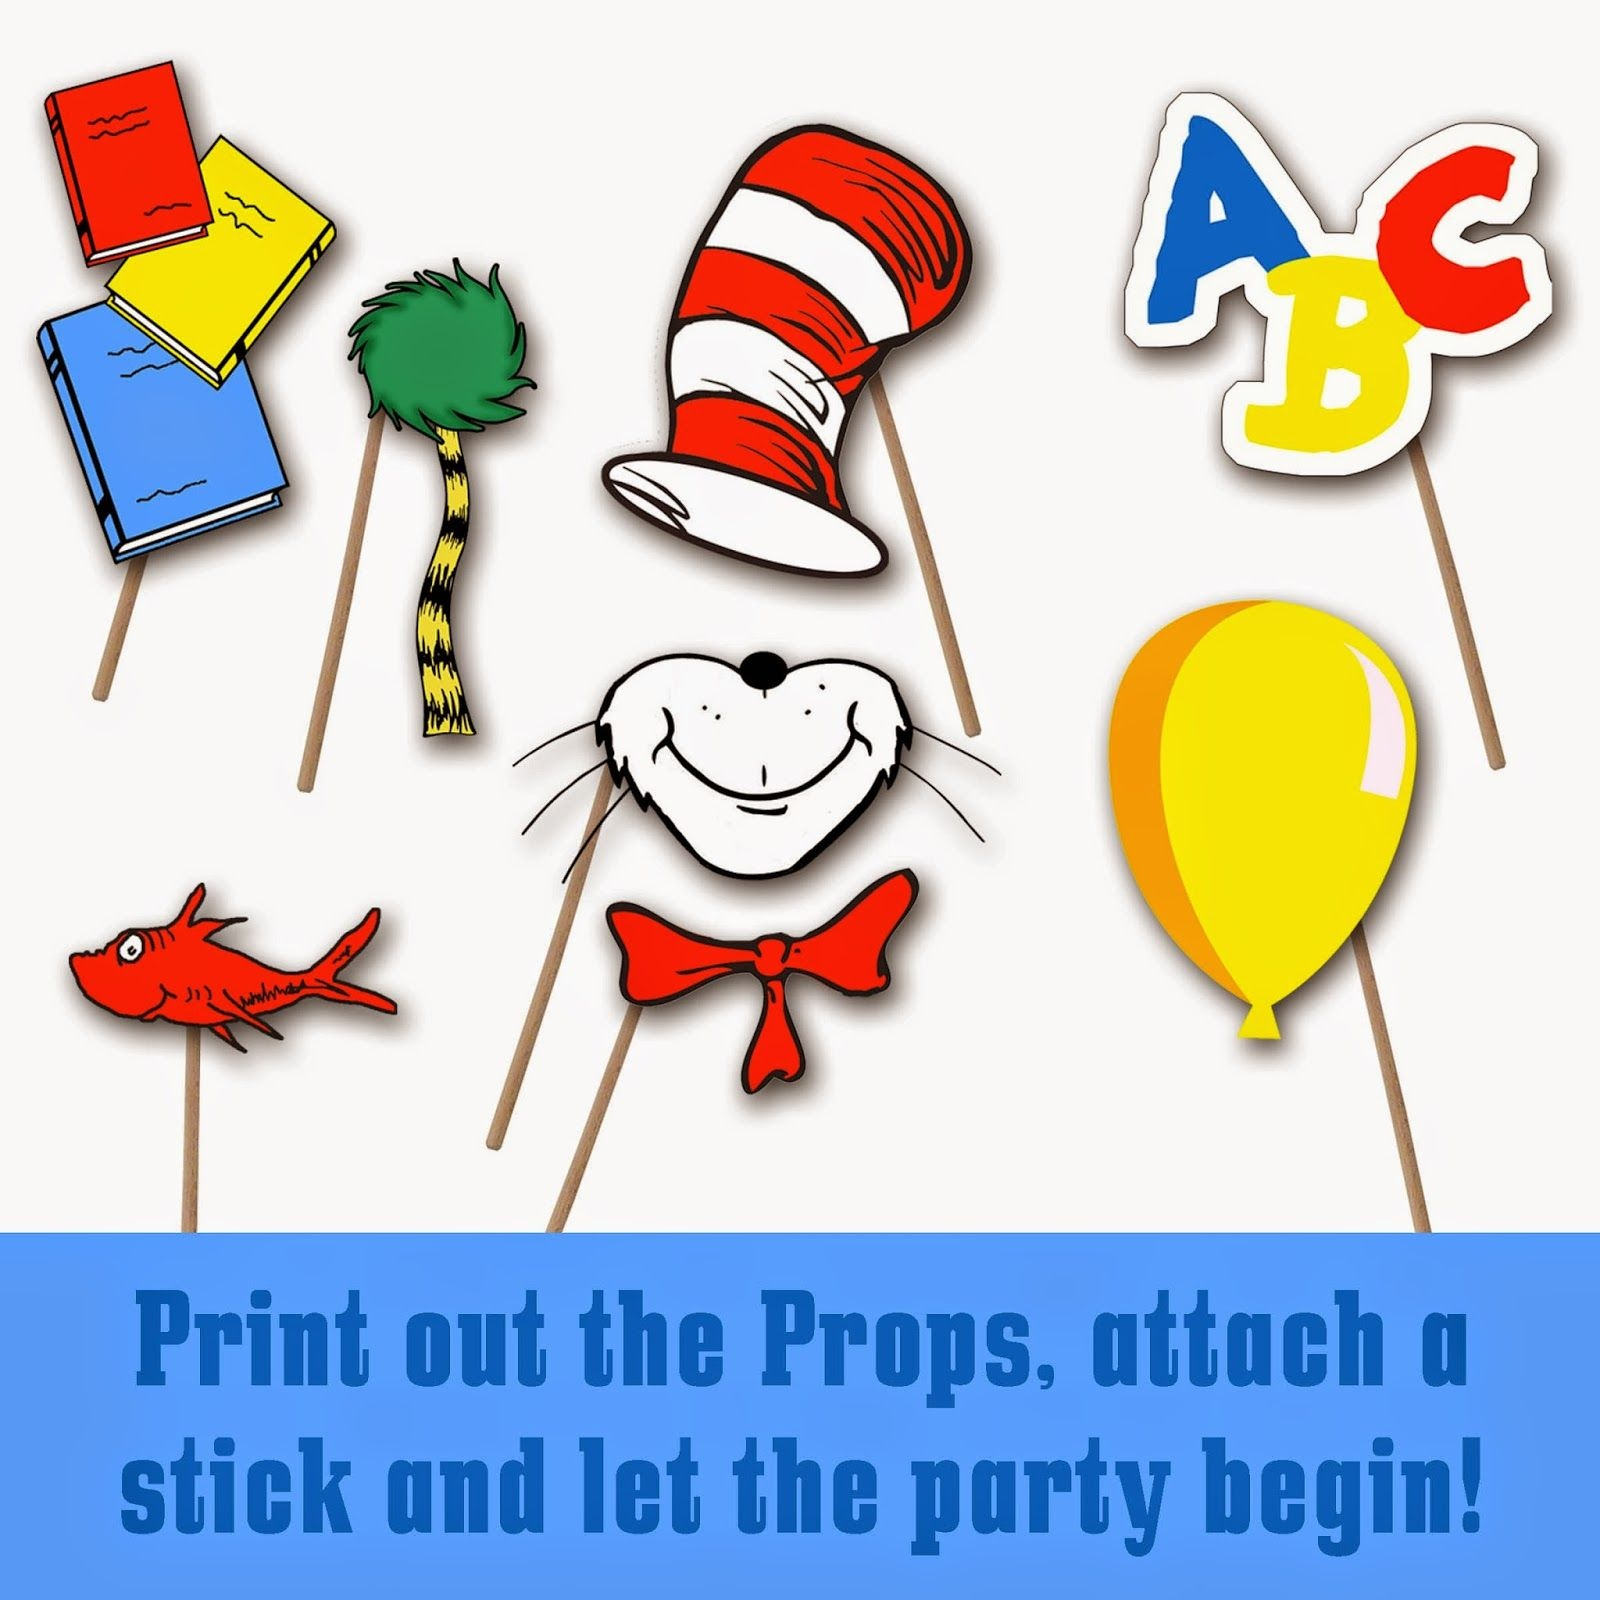 Dr. Seuss Photo Booth Printable Props | School-Dr. Seuss - Free Printable Dr Seuss Photo Props